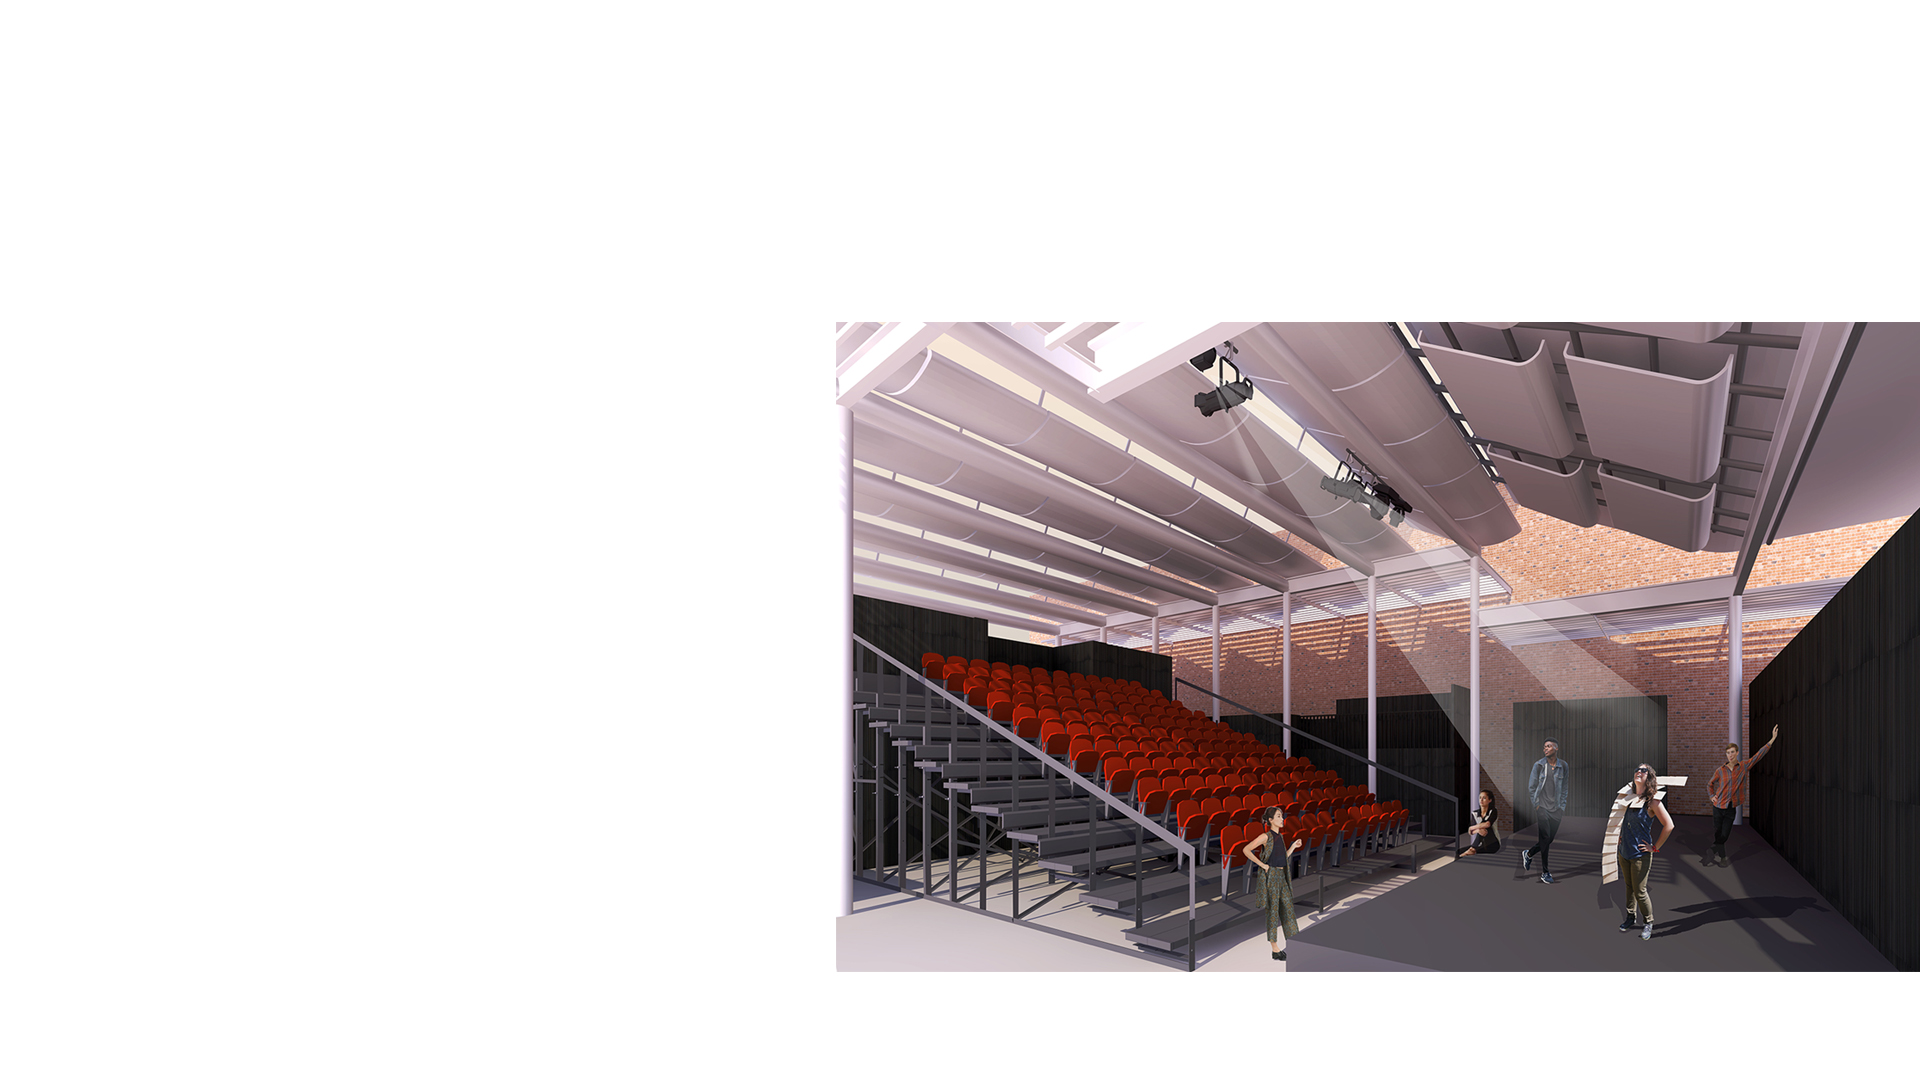 3D cut section of proposed temporary theatre at the Wolverhampton Grand